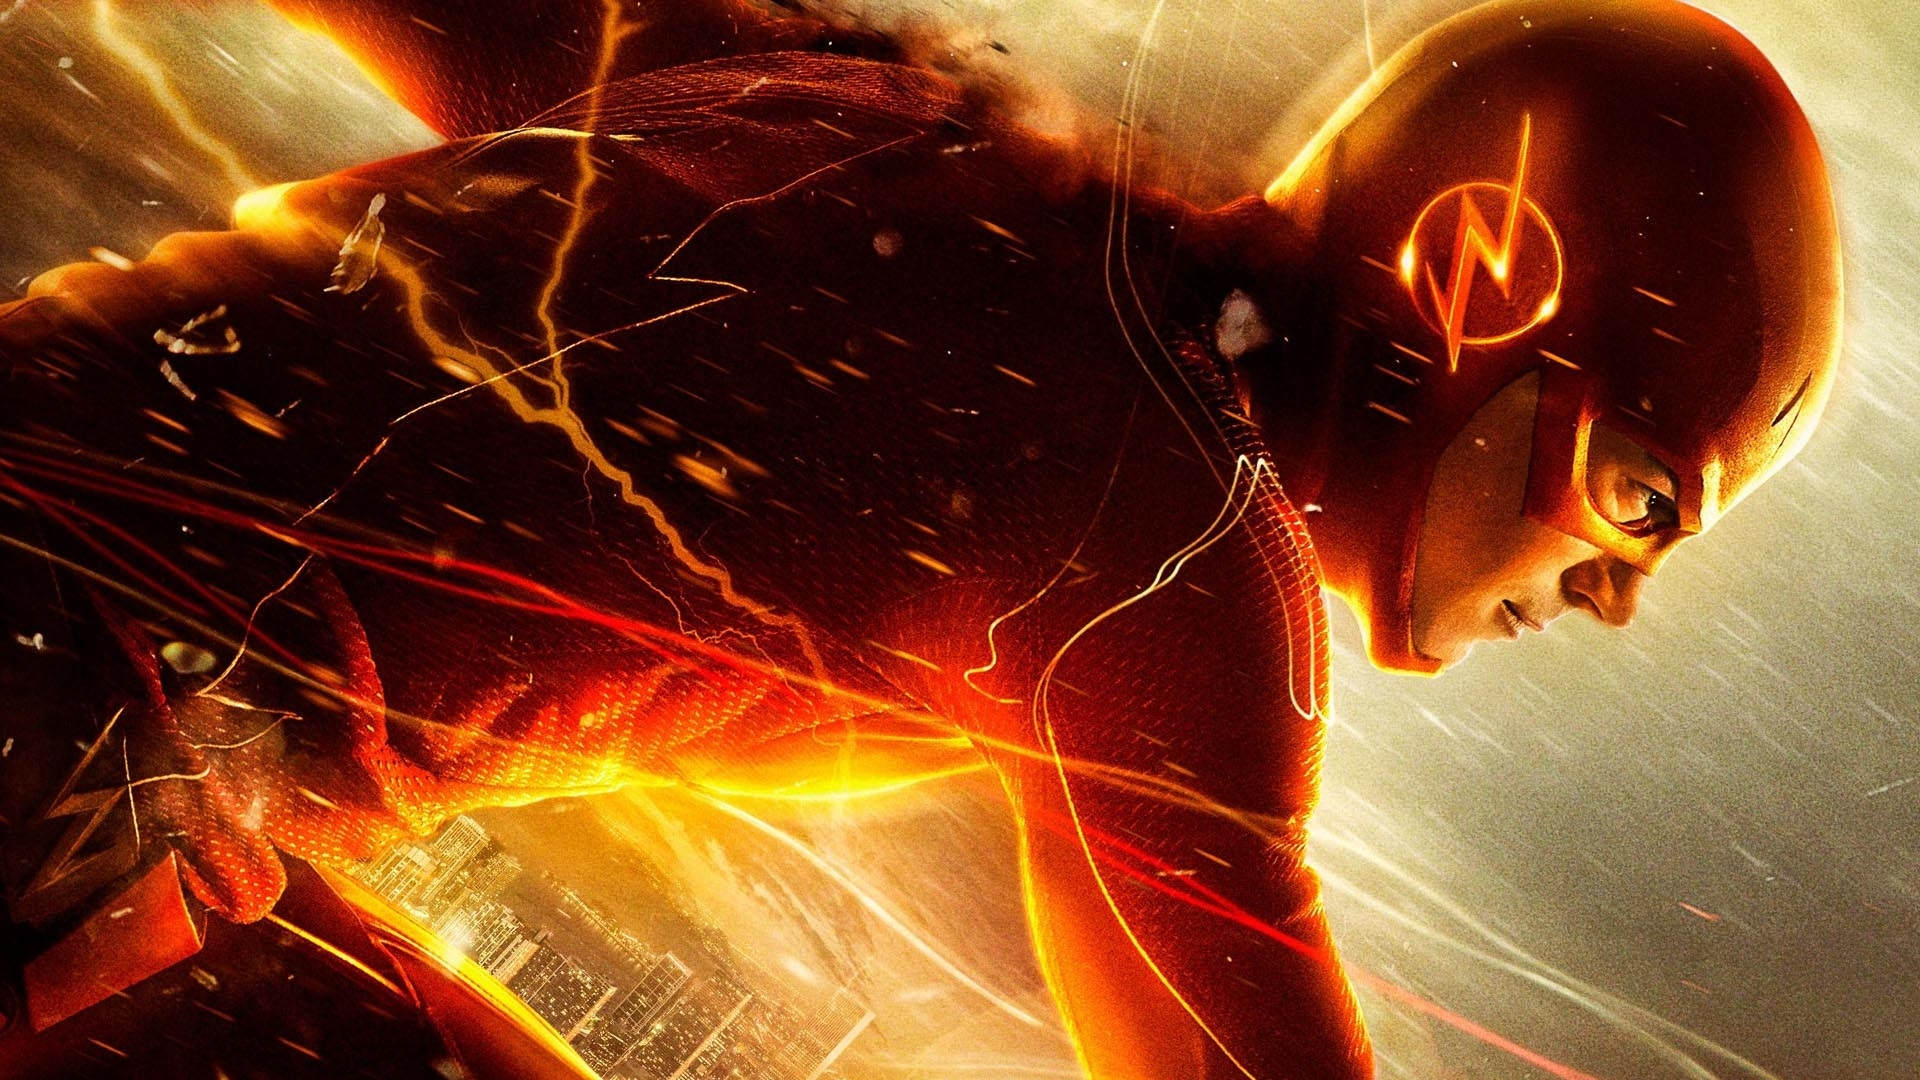 the flash wallpapers, best the flash wallpapers in high quality, the